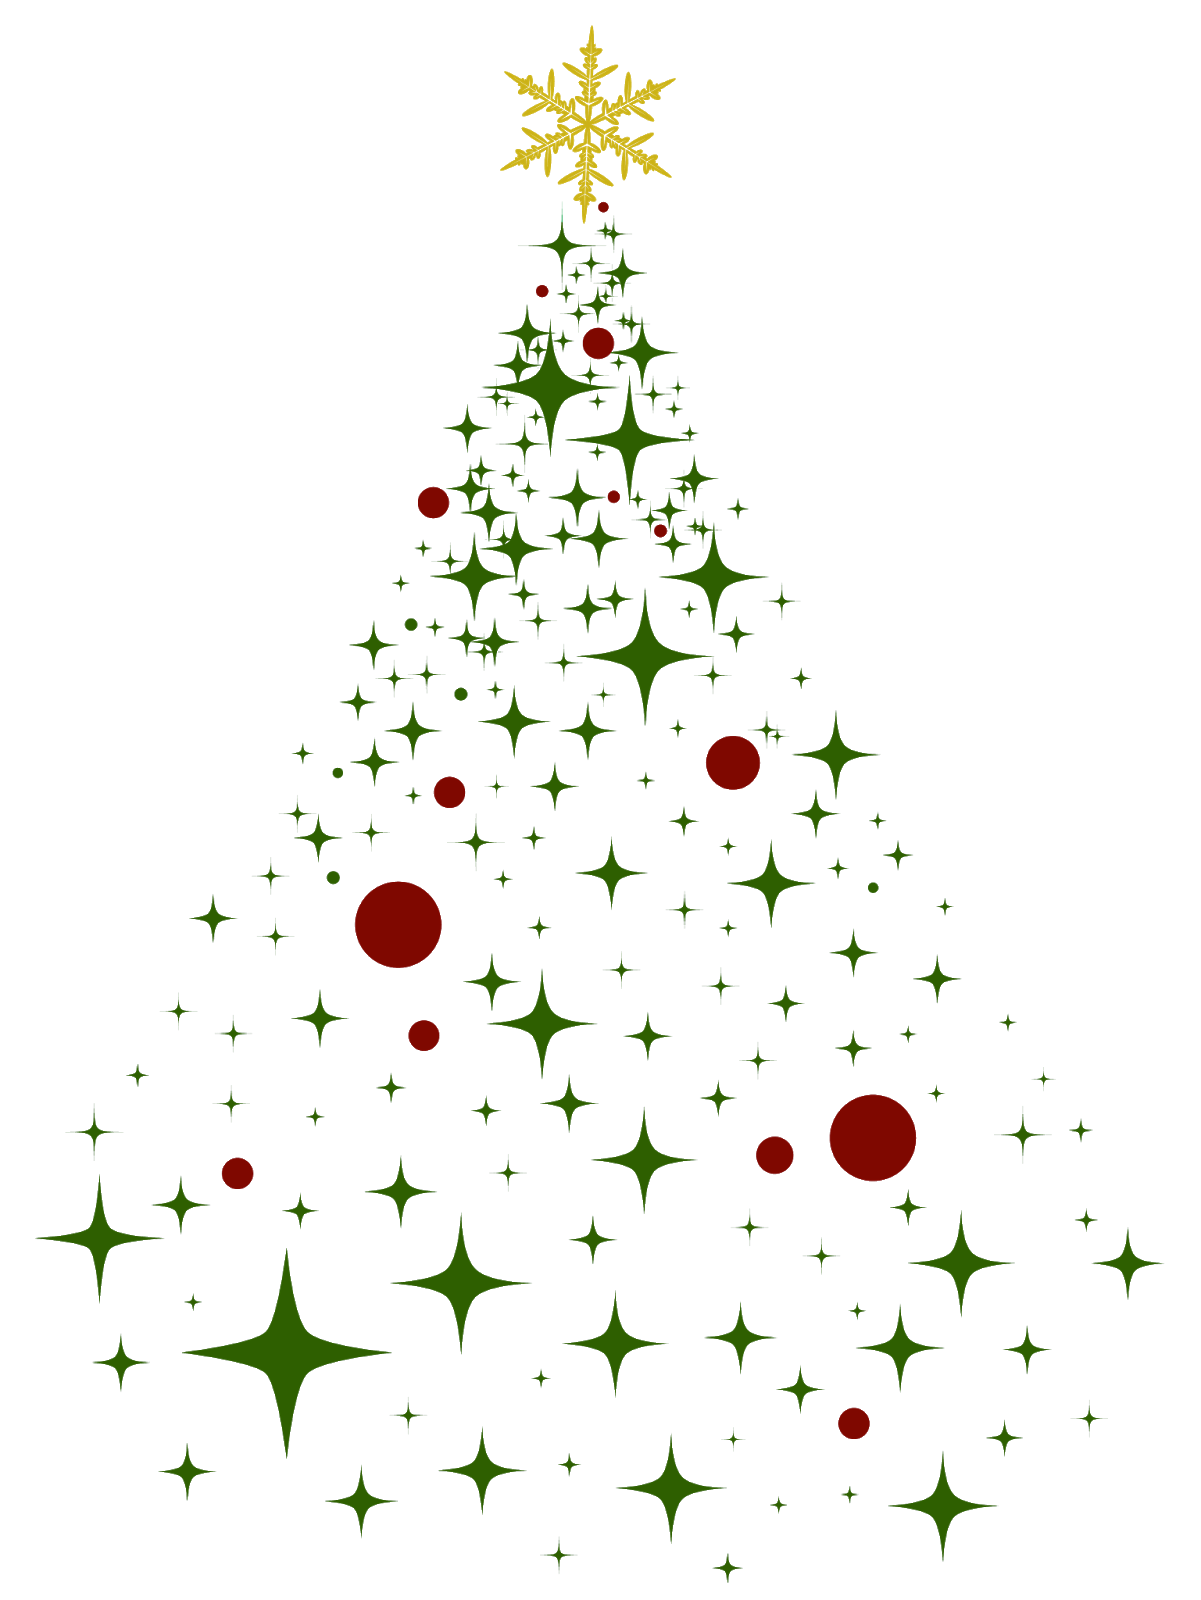 White Christmas Tree Png.Christmas Tree Png Transparent